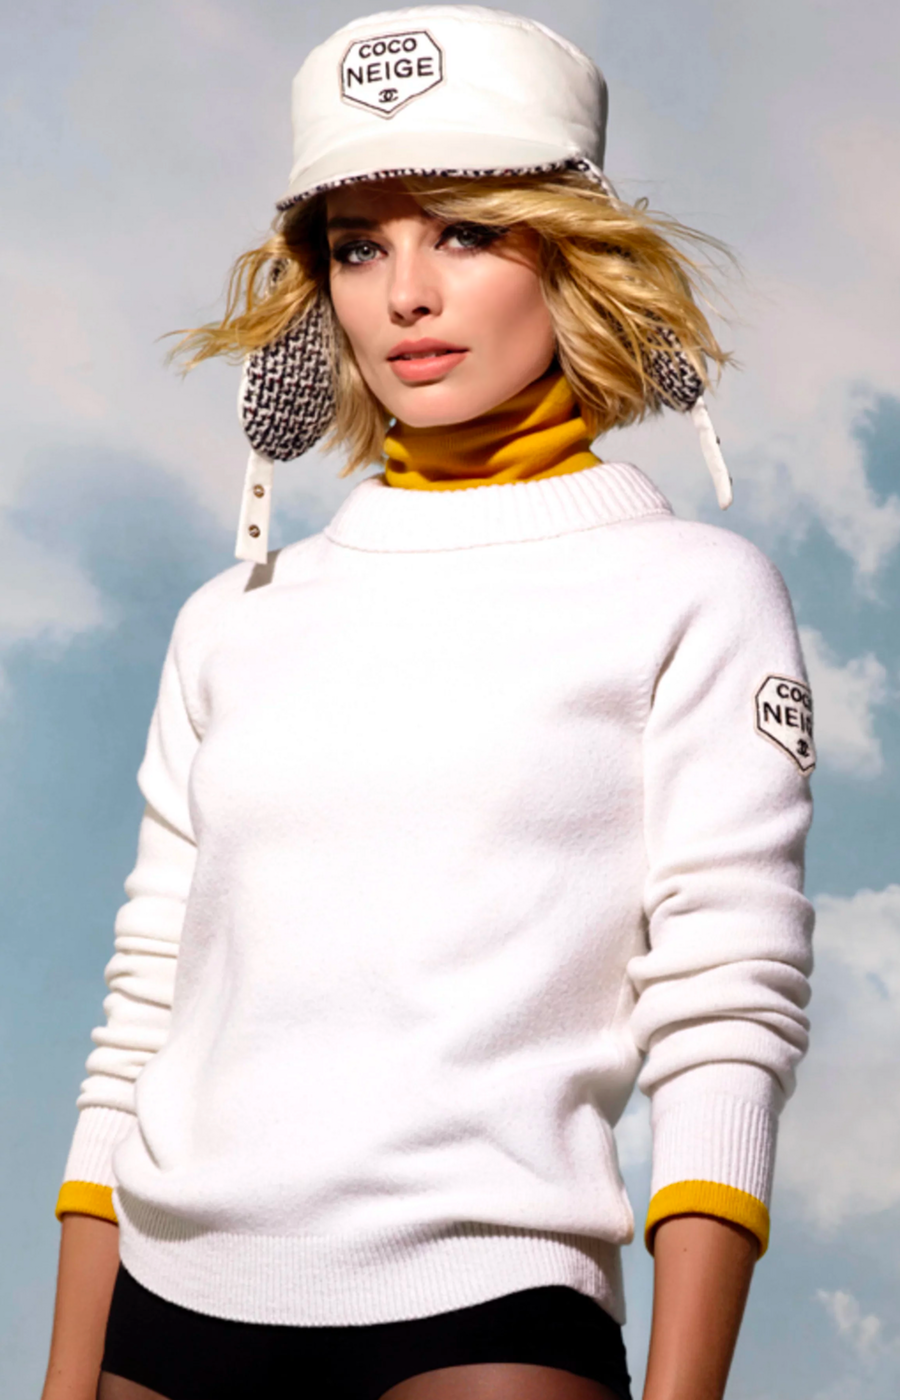 CHANEL COCO NEIGE COLLECTION FEATURING MARGOT ROBBIE